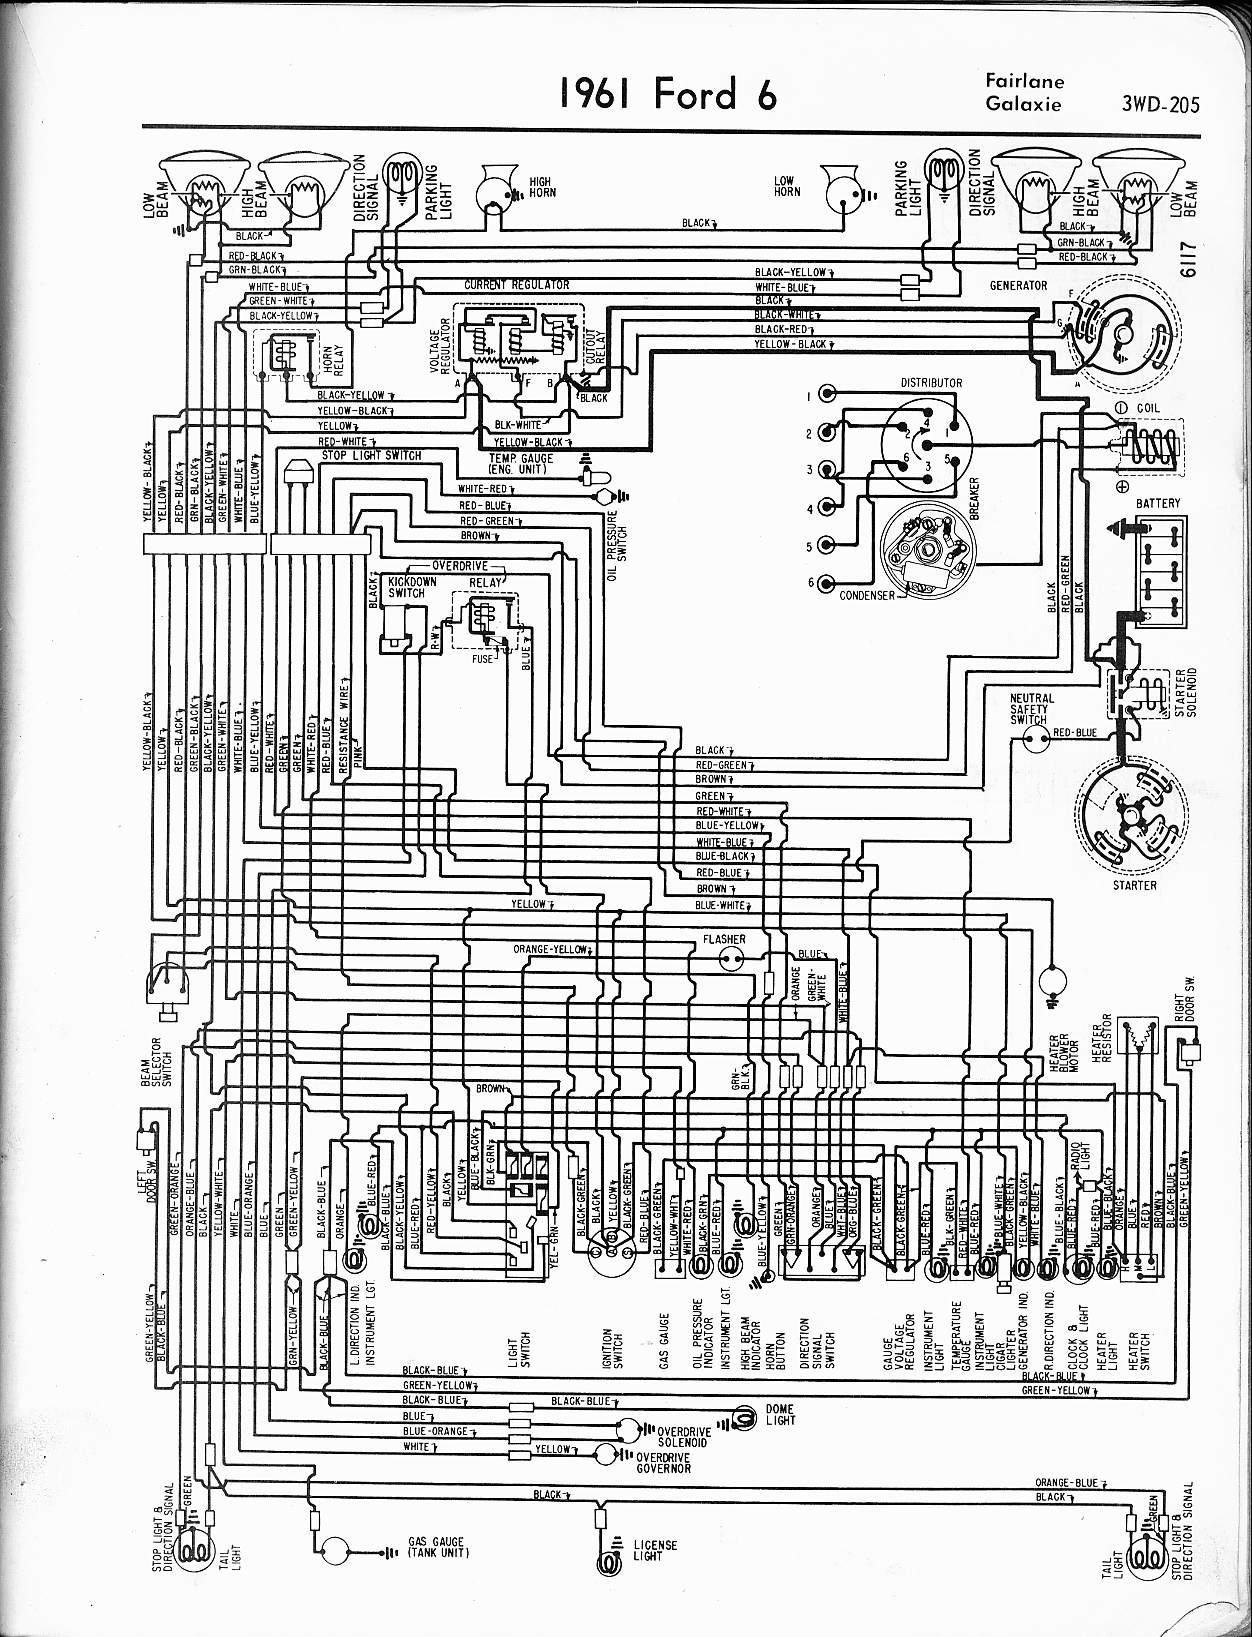 hight resolution of 57 65 ford wiring diagrams 1949 ford generator wiring 1961 6 cyl fairlane galaxie